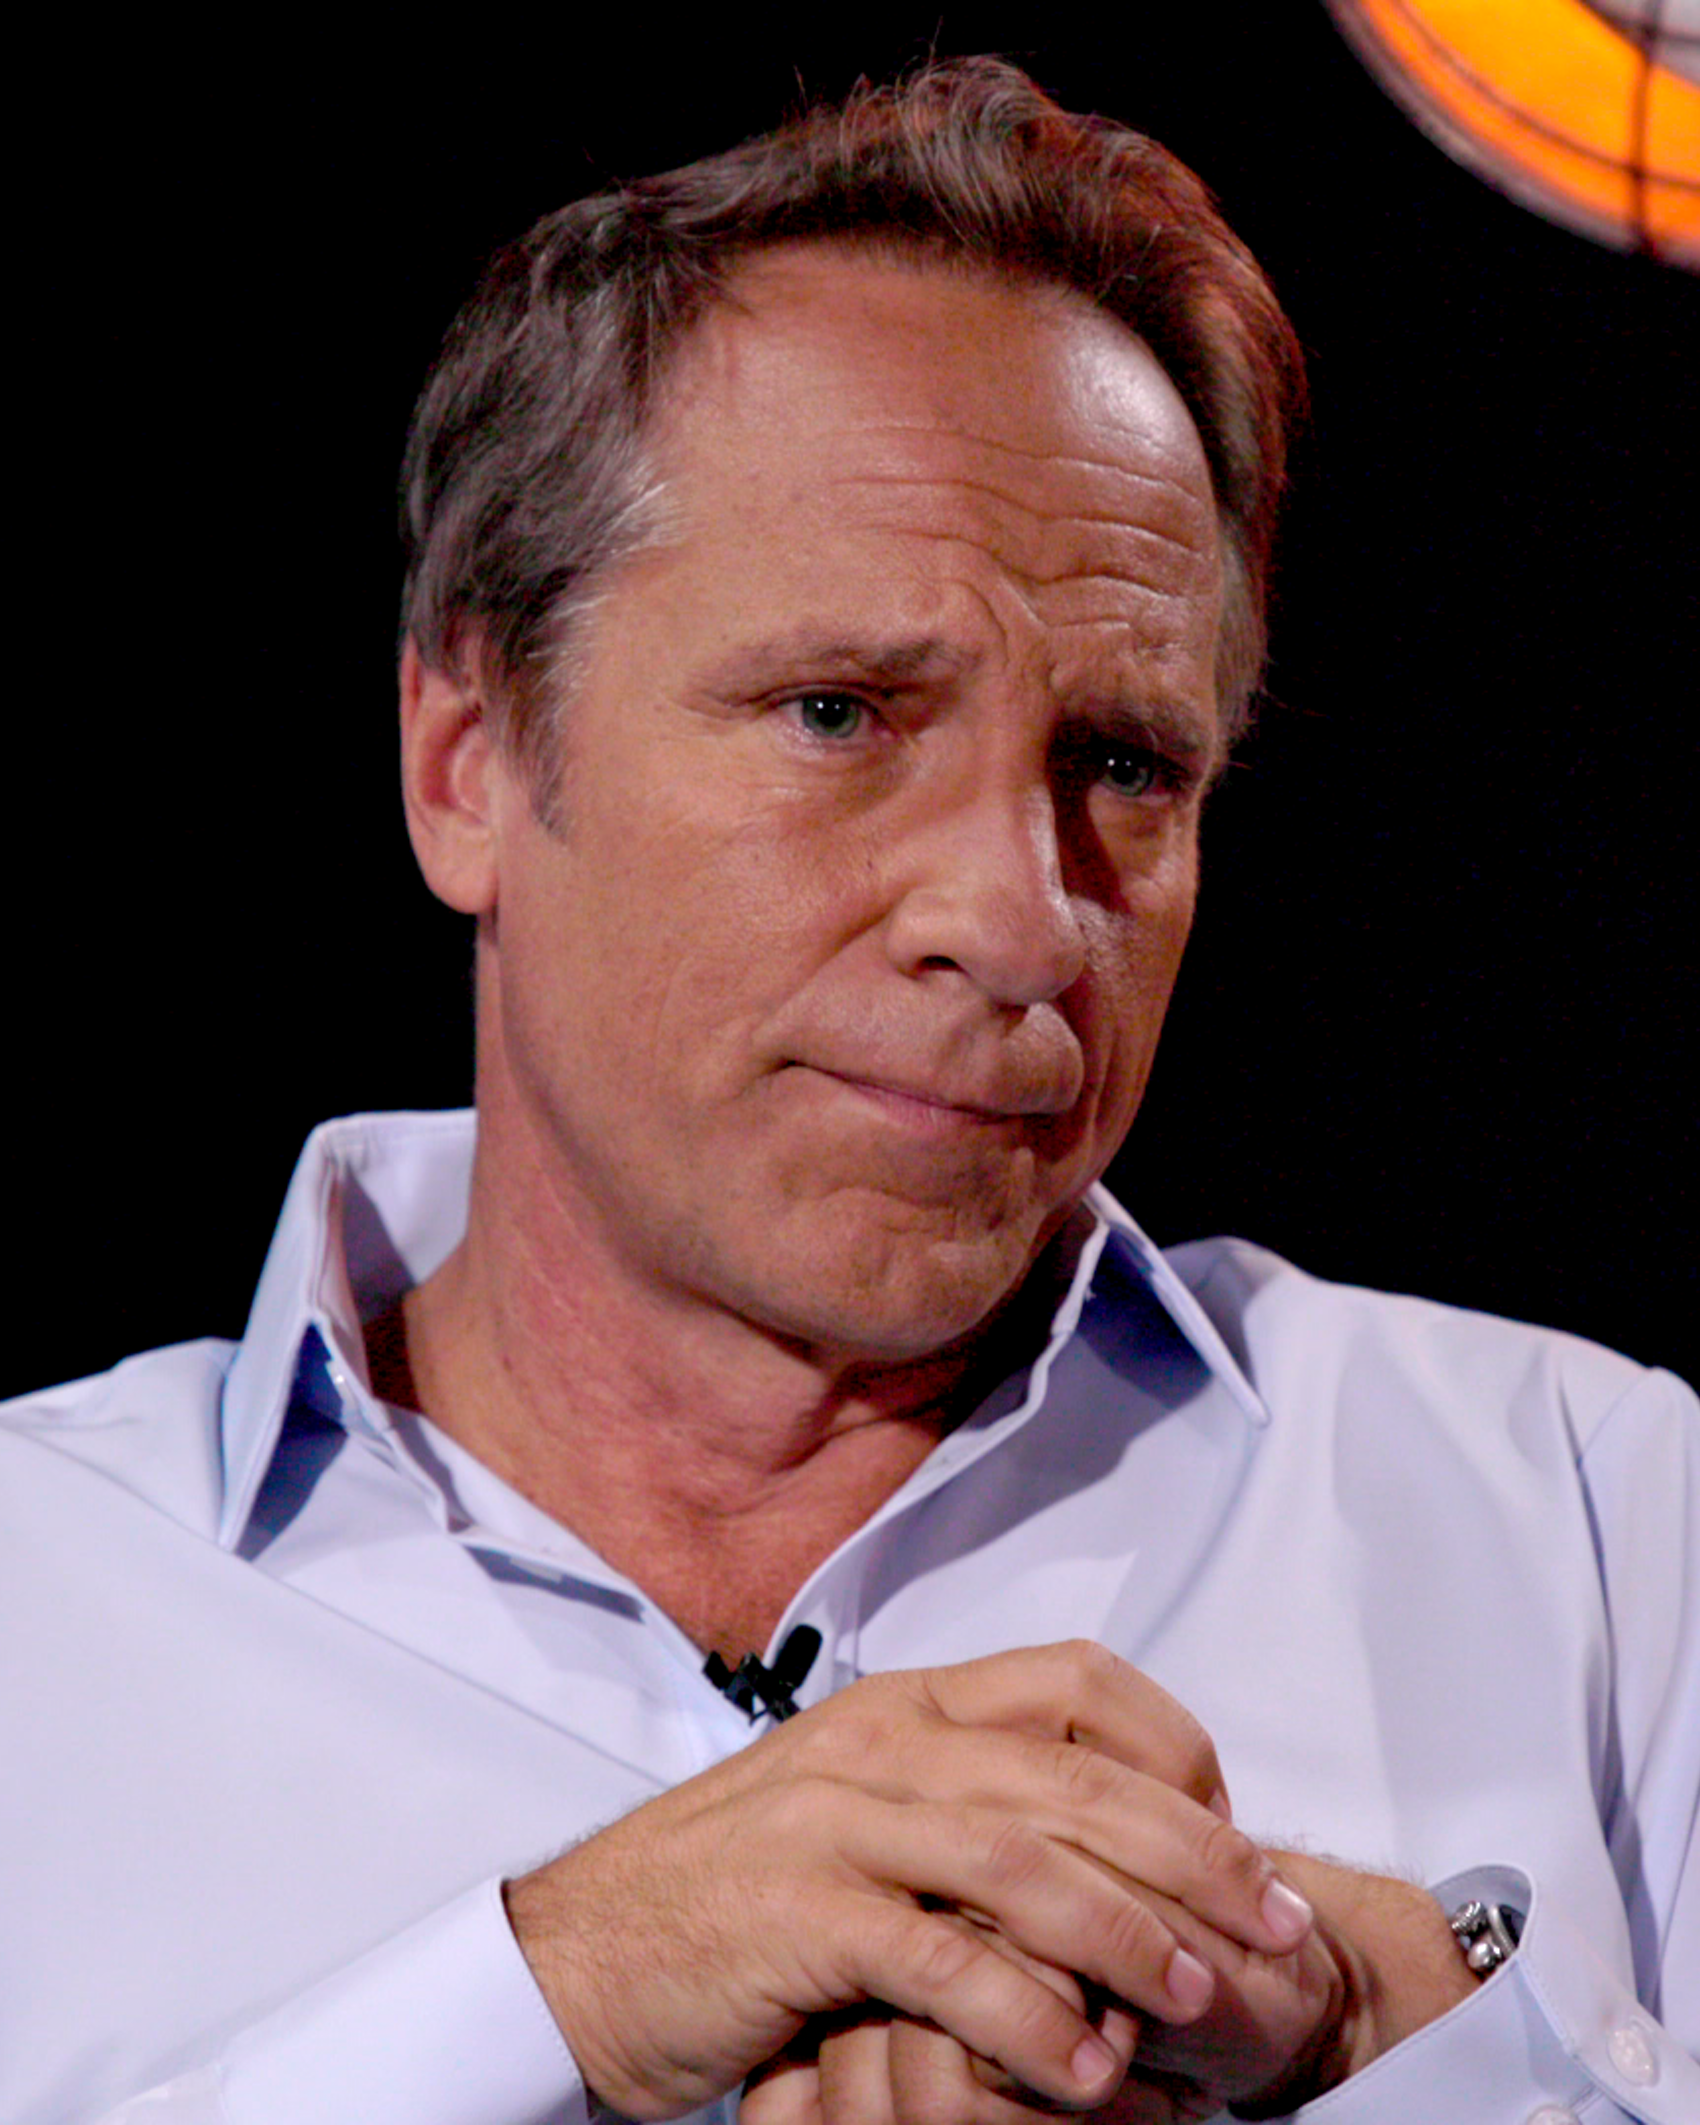 Mike Rowe on The Ben Shapiro Show Sunday Special 2018